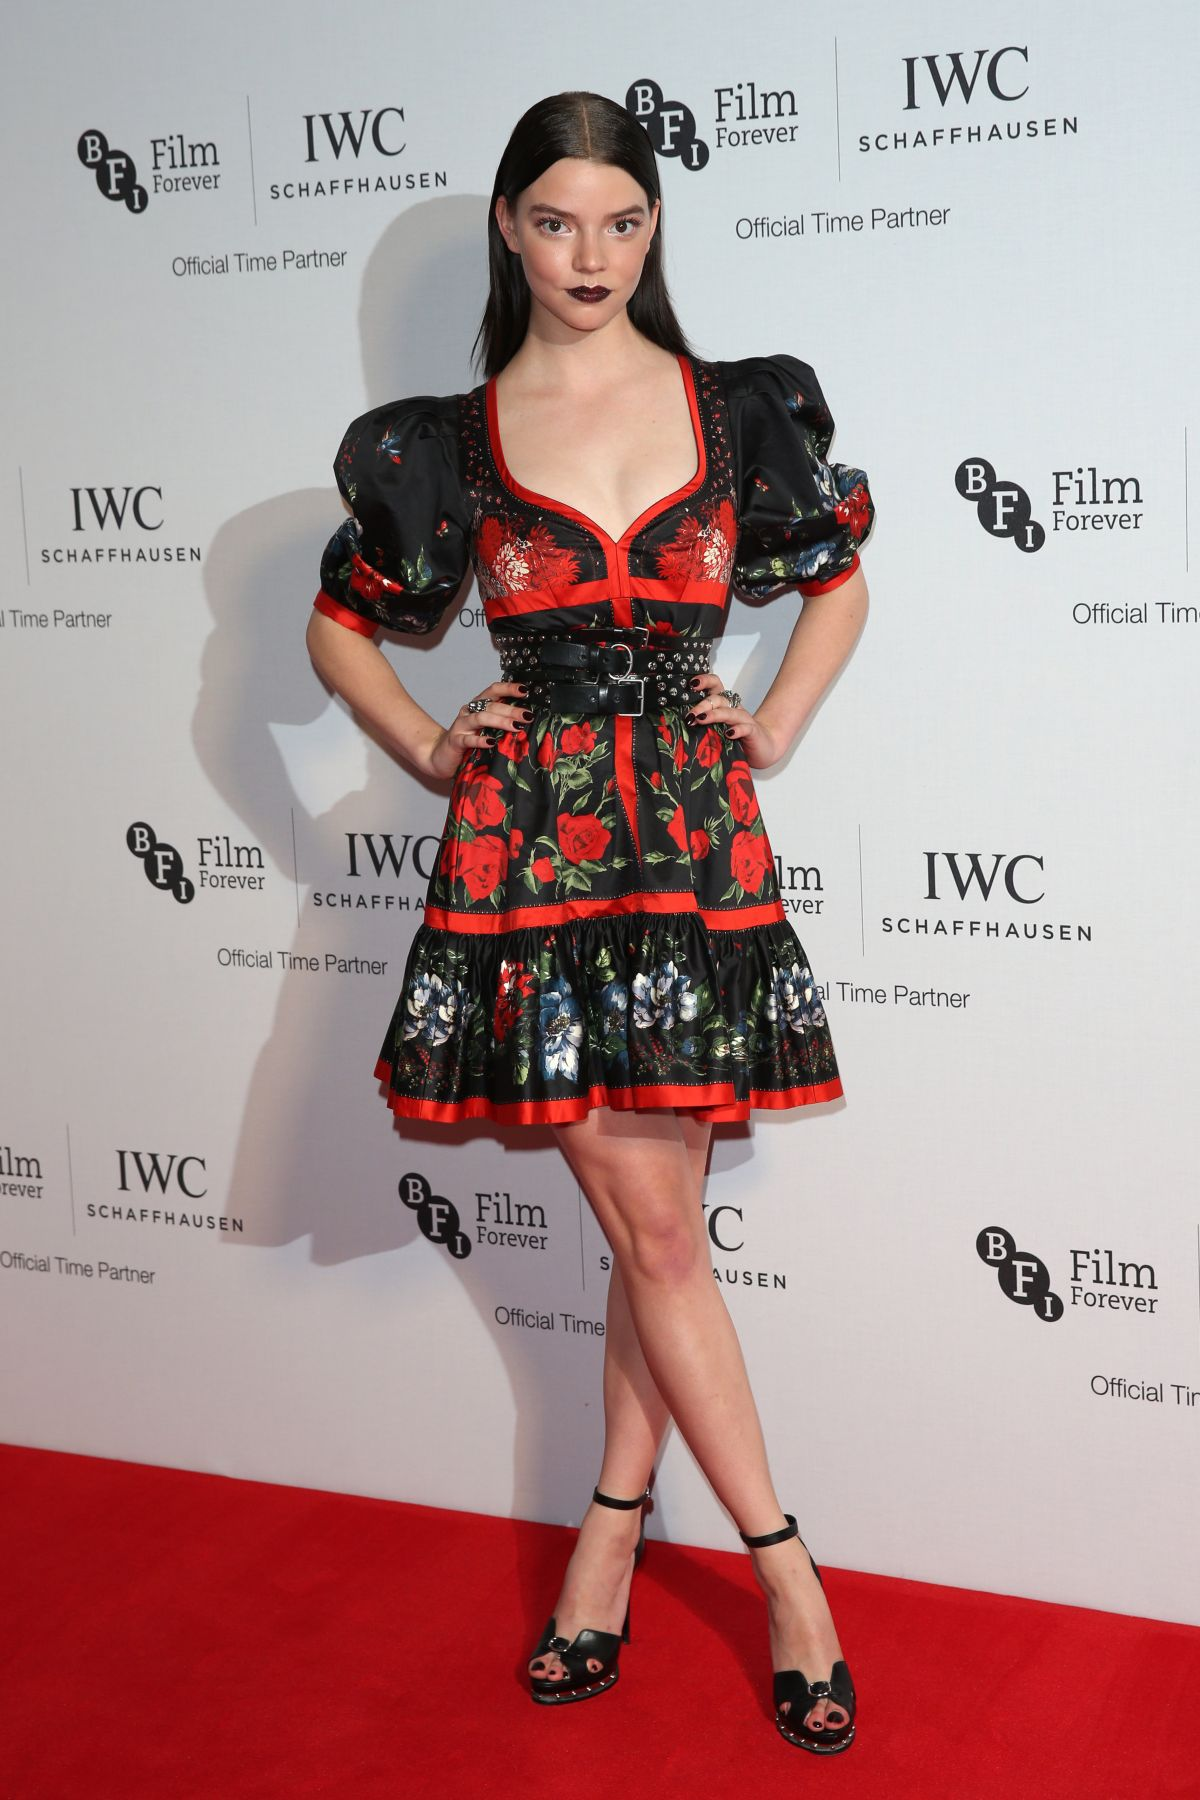 anya-taylor-joy-at-iwc-schaffhausen-dinner-in-honour-of-bfi-rosewood-in-london-10-04-2016_1.jpg